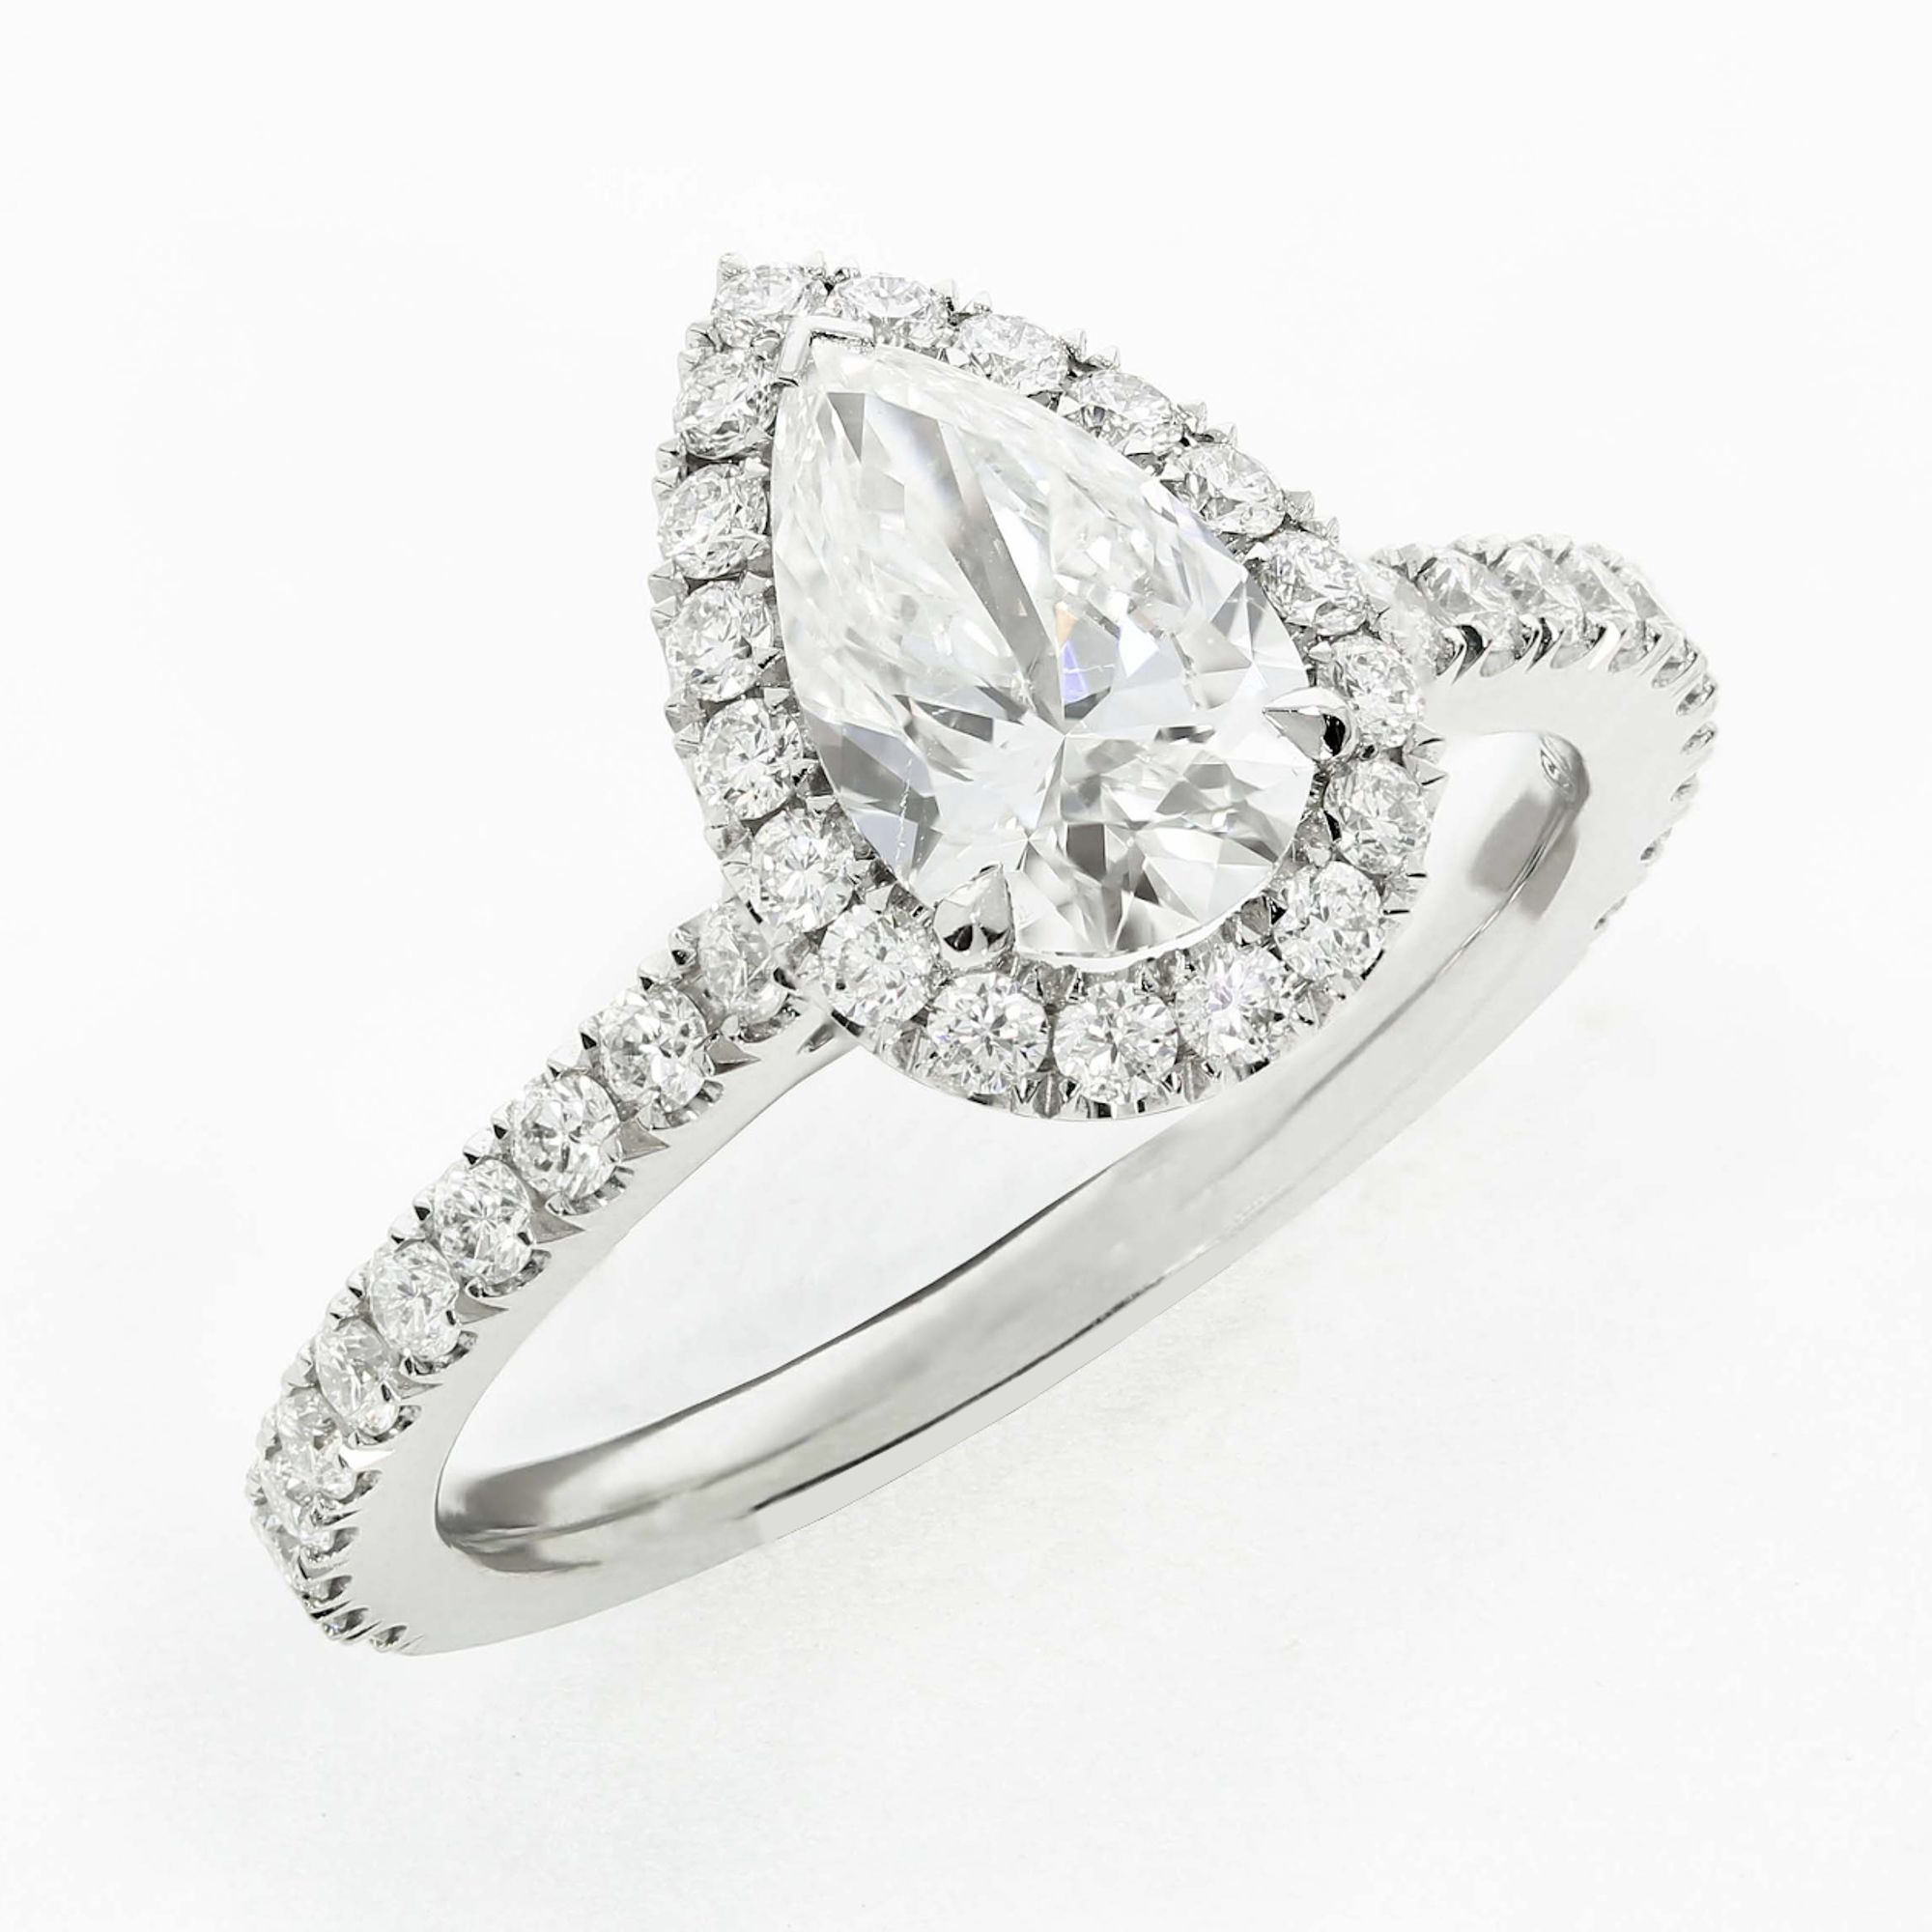 Dainty pear engagement rings forever. We're pretty ...